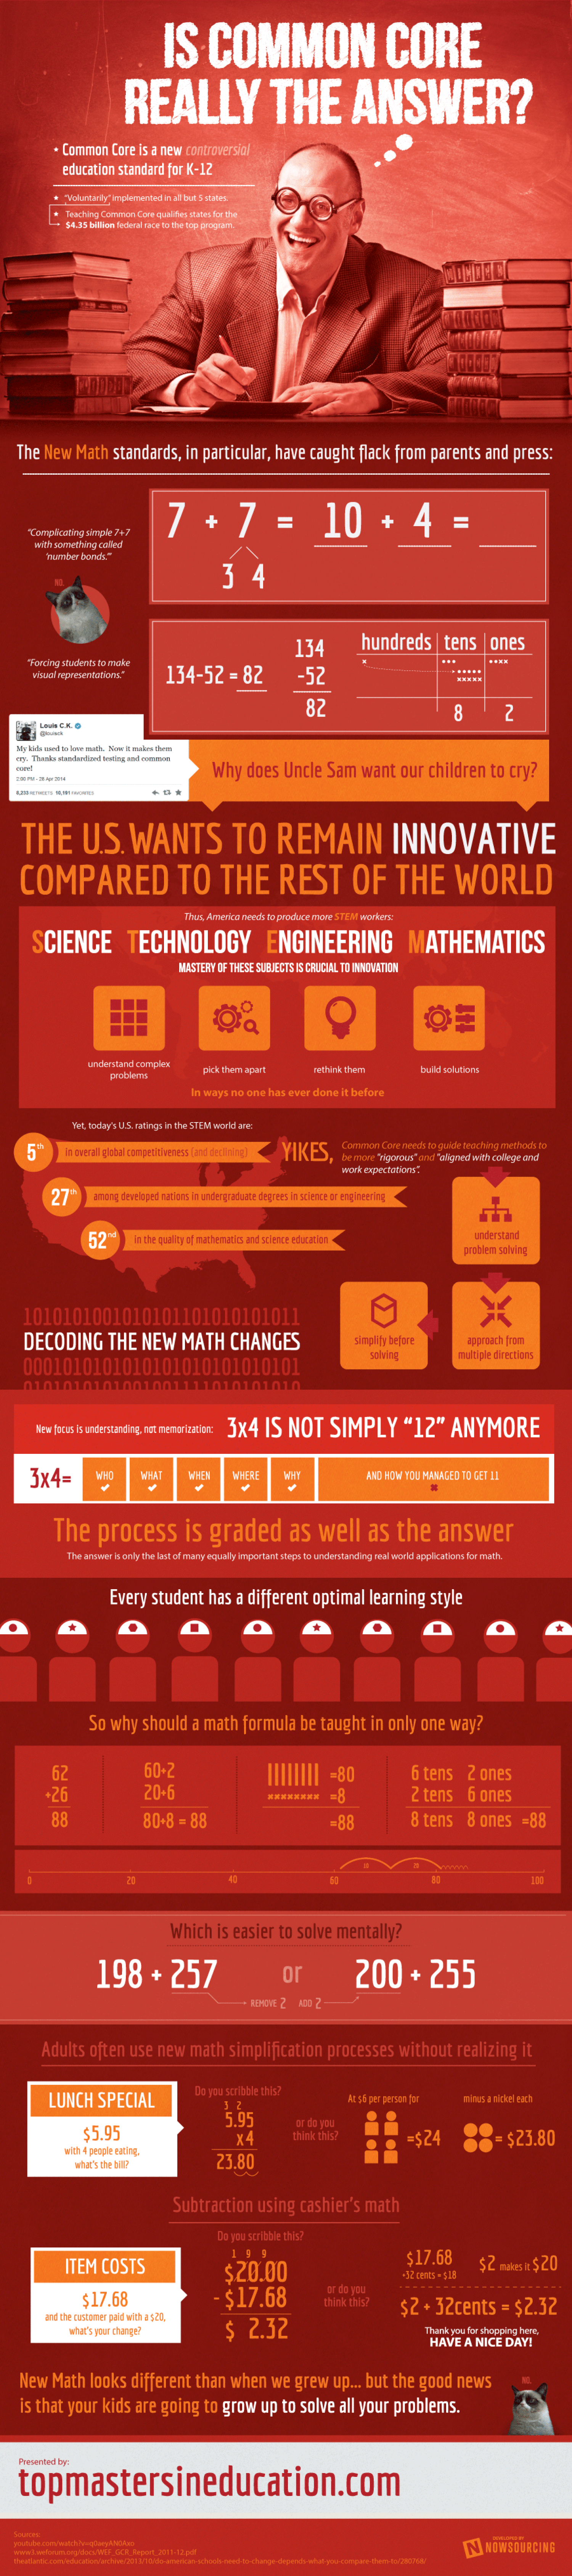 Is Common Core Really the Answer? Infographic